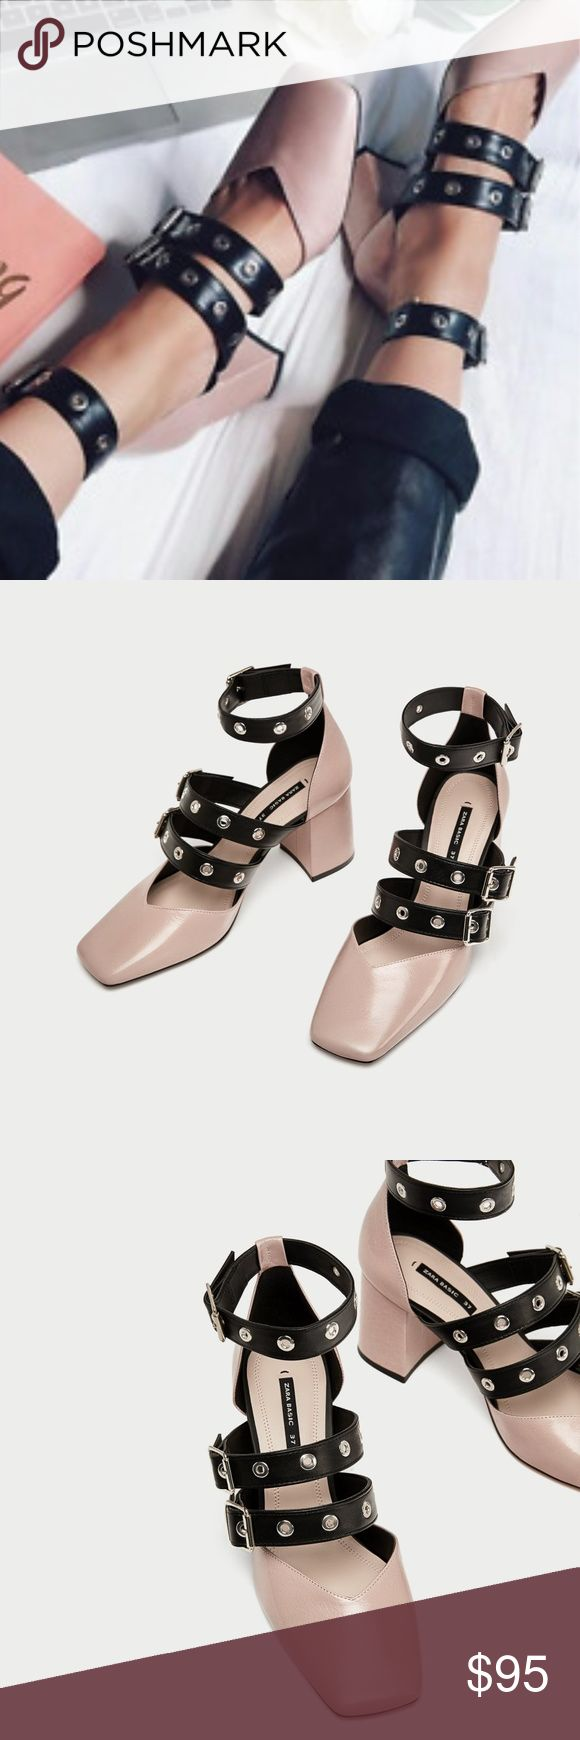 Zara High Heel Leather Court Shoes with Buckles Gorgeous Zara Two Toned leather court shoes with buckles & block heels, Brand new with tags & box! d  Pink leather high heel shoes. Featuring contrasting-coloured buckled straps on the instep and ankle and squared toes.  Heel height of 7,5 cm. / 2.9″ Zara Shoes Heels